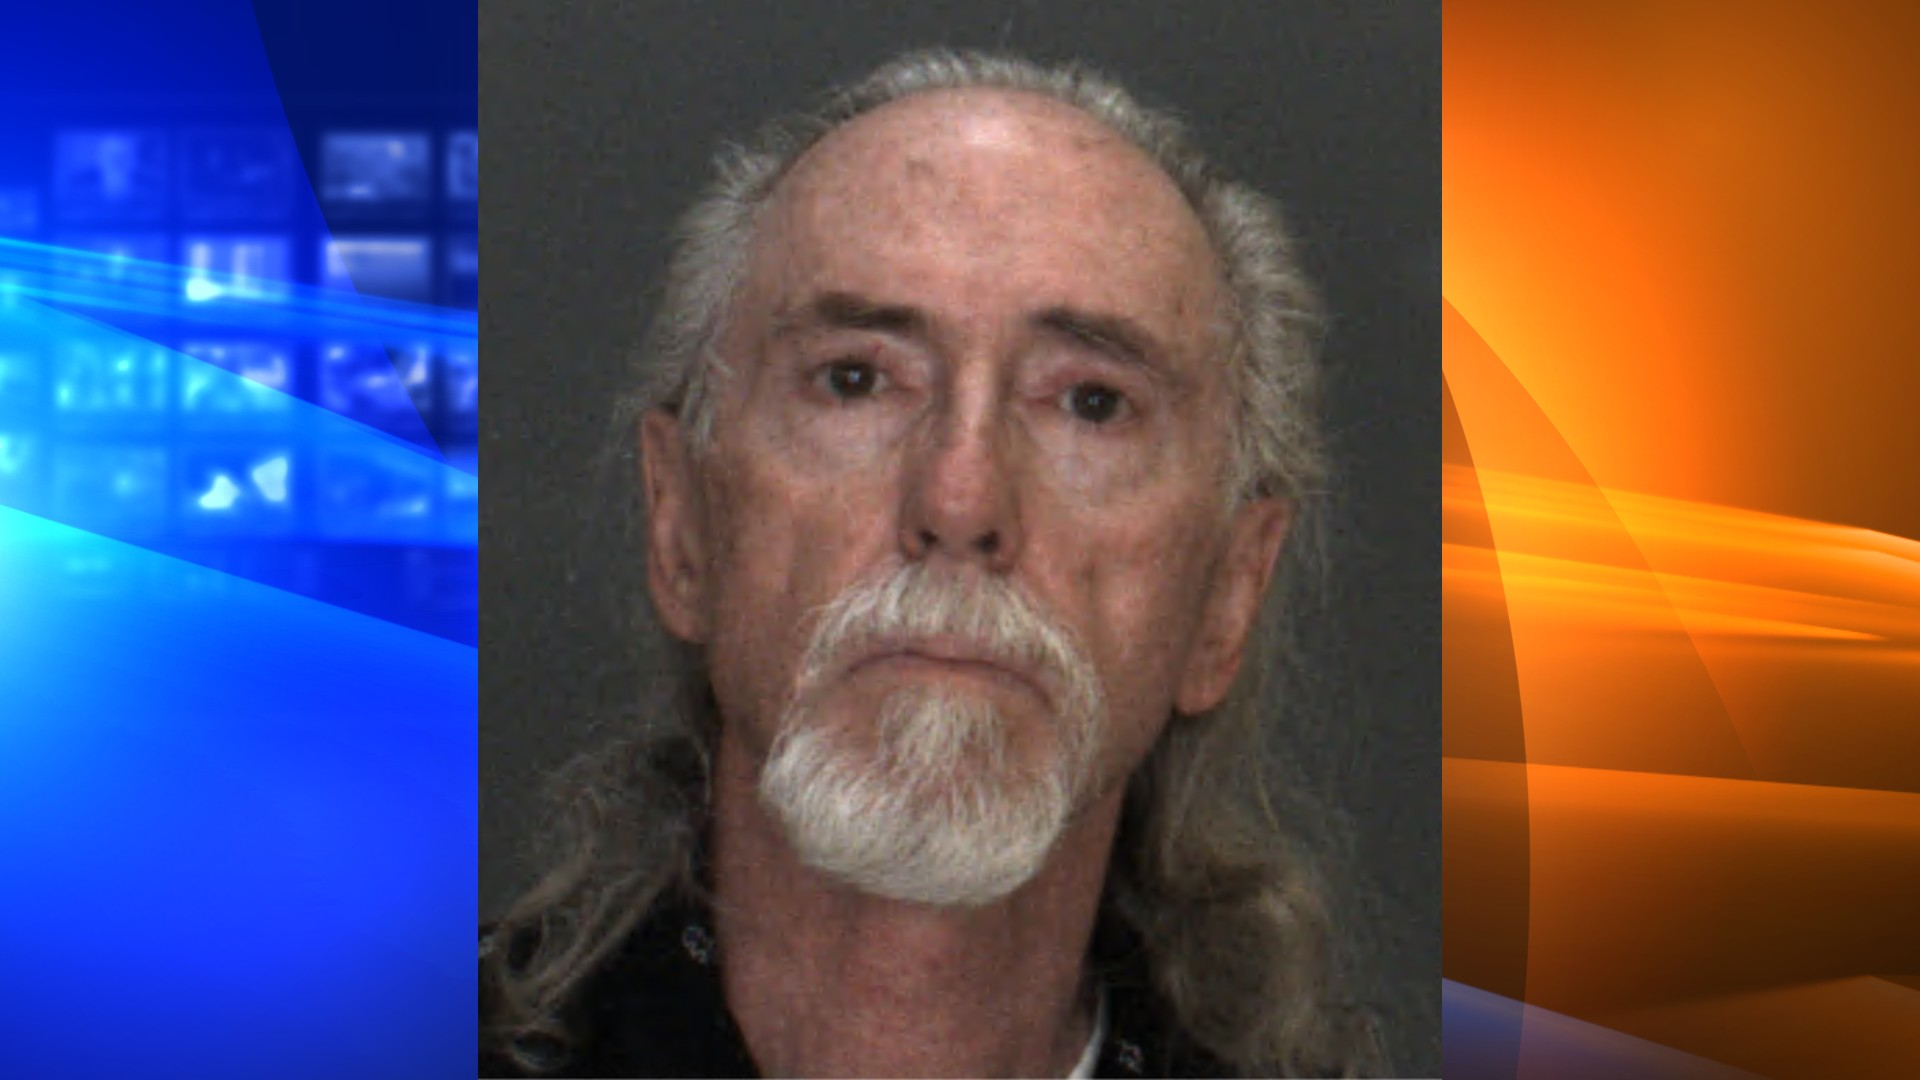 Kenneth Sockwell, a 63-year-old from Apple Valley, is seen a booking photo shared by the San Bernardino County Sheriff-Coroner Department on Oct. 25, 2021.